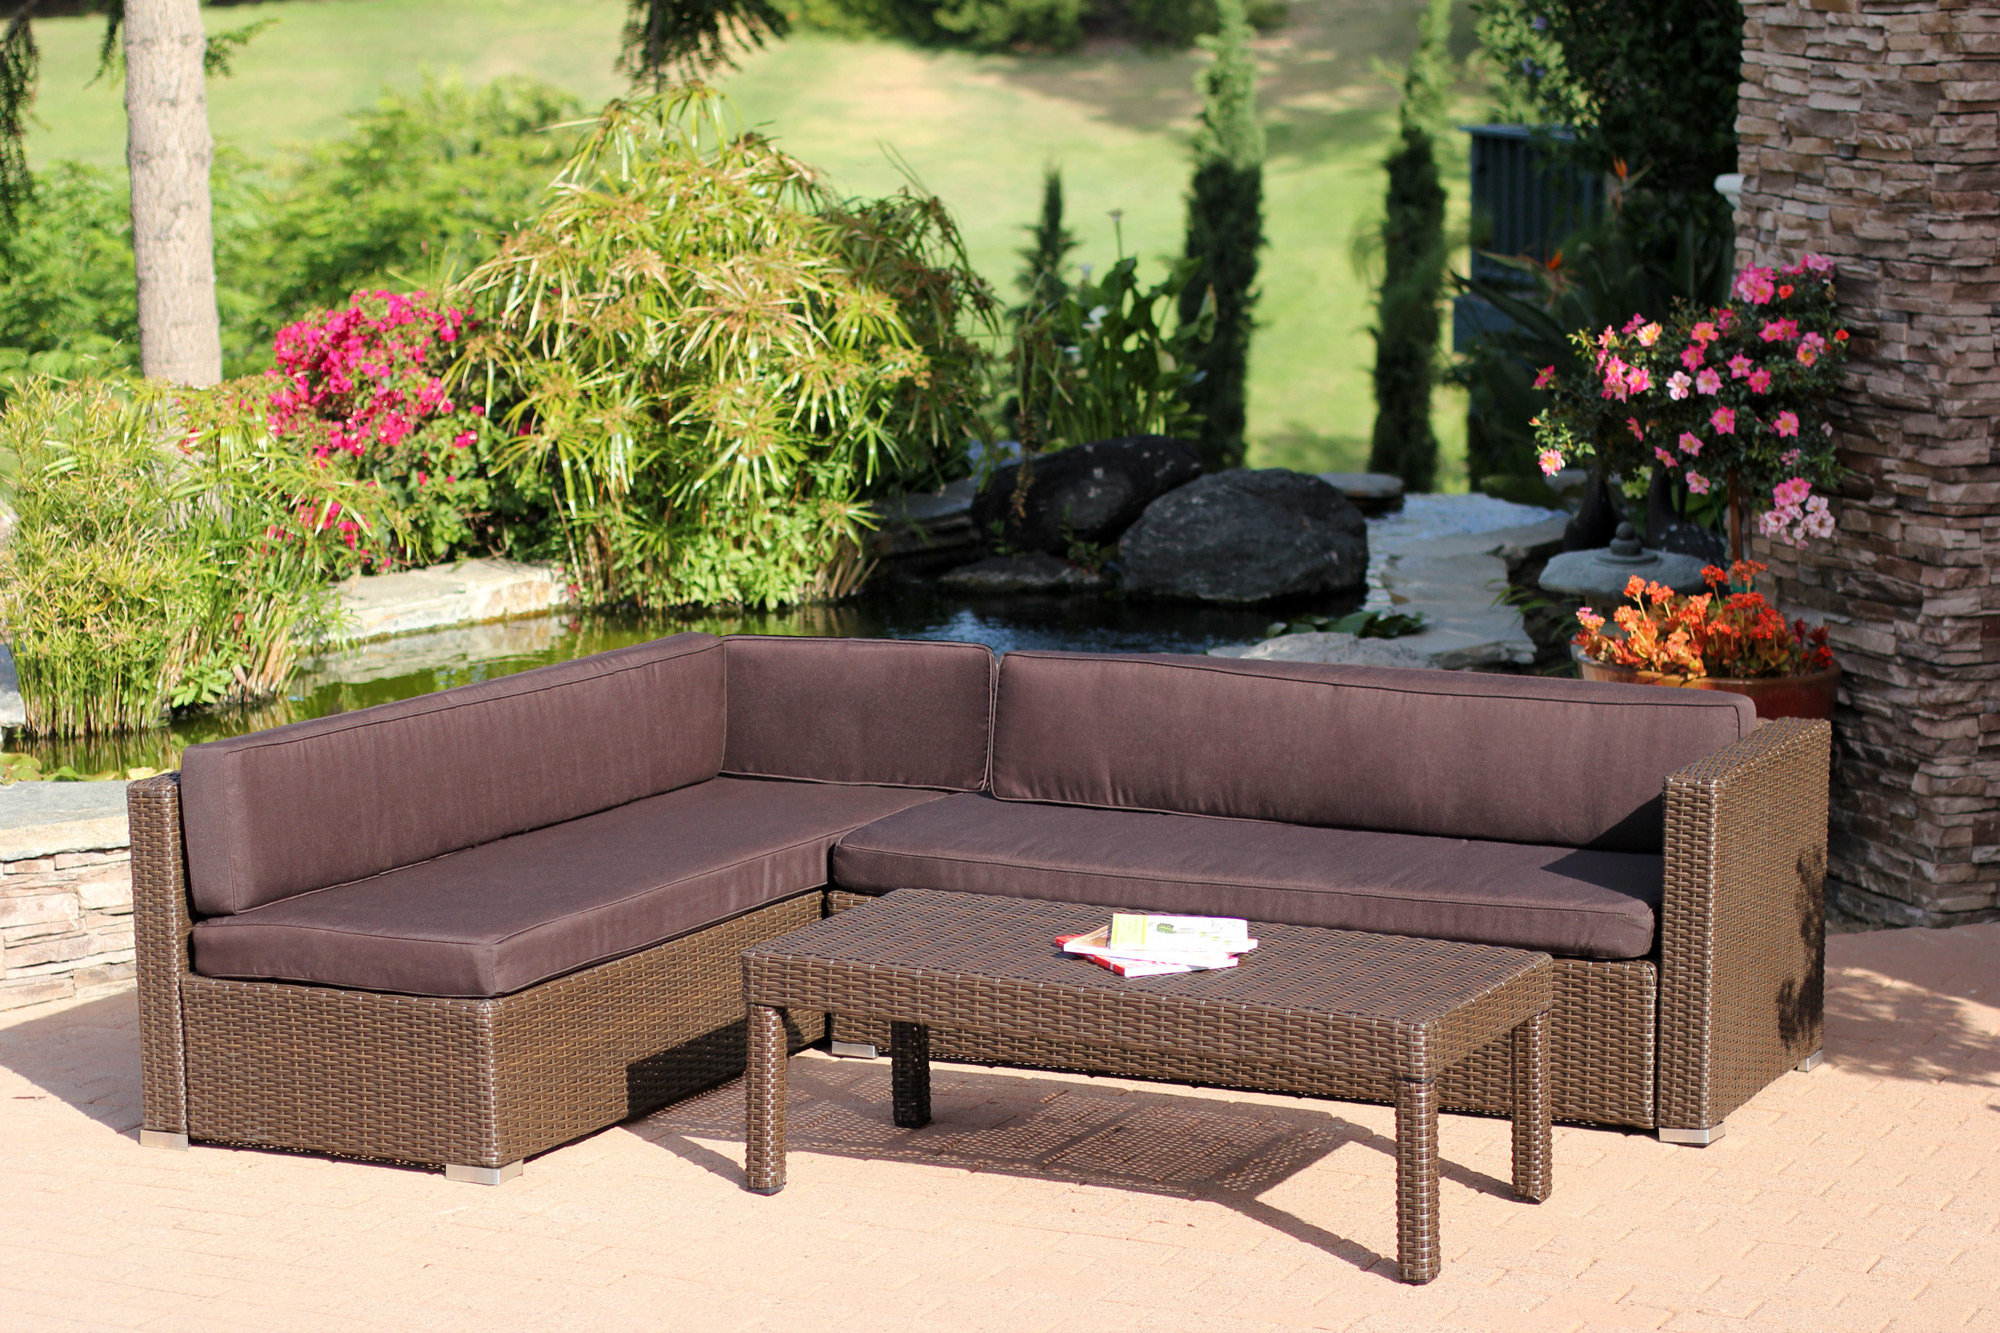 Larsen Patio Sectionals With Cushions Intended For Trendy Totnes 3 Piece Sectional Set With Cushions (Gallery 15 of 20)